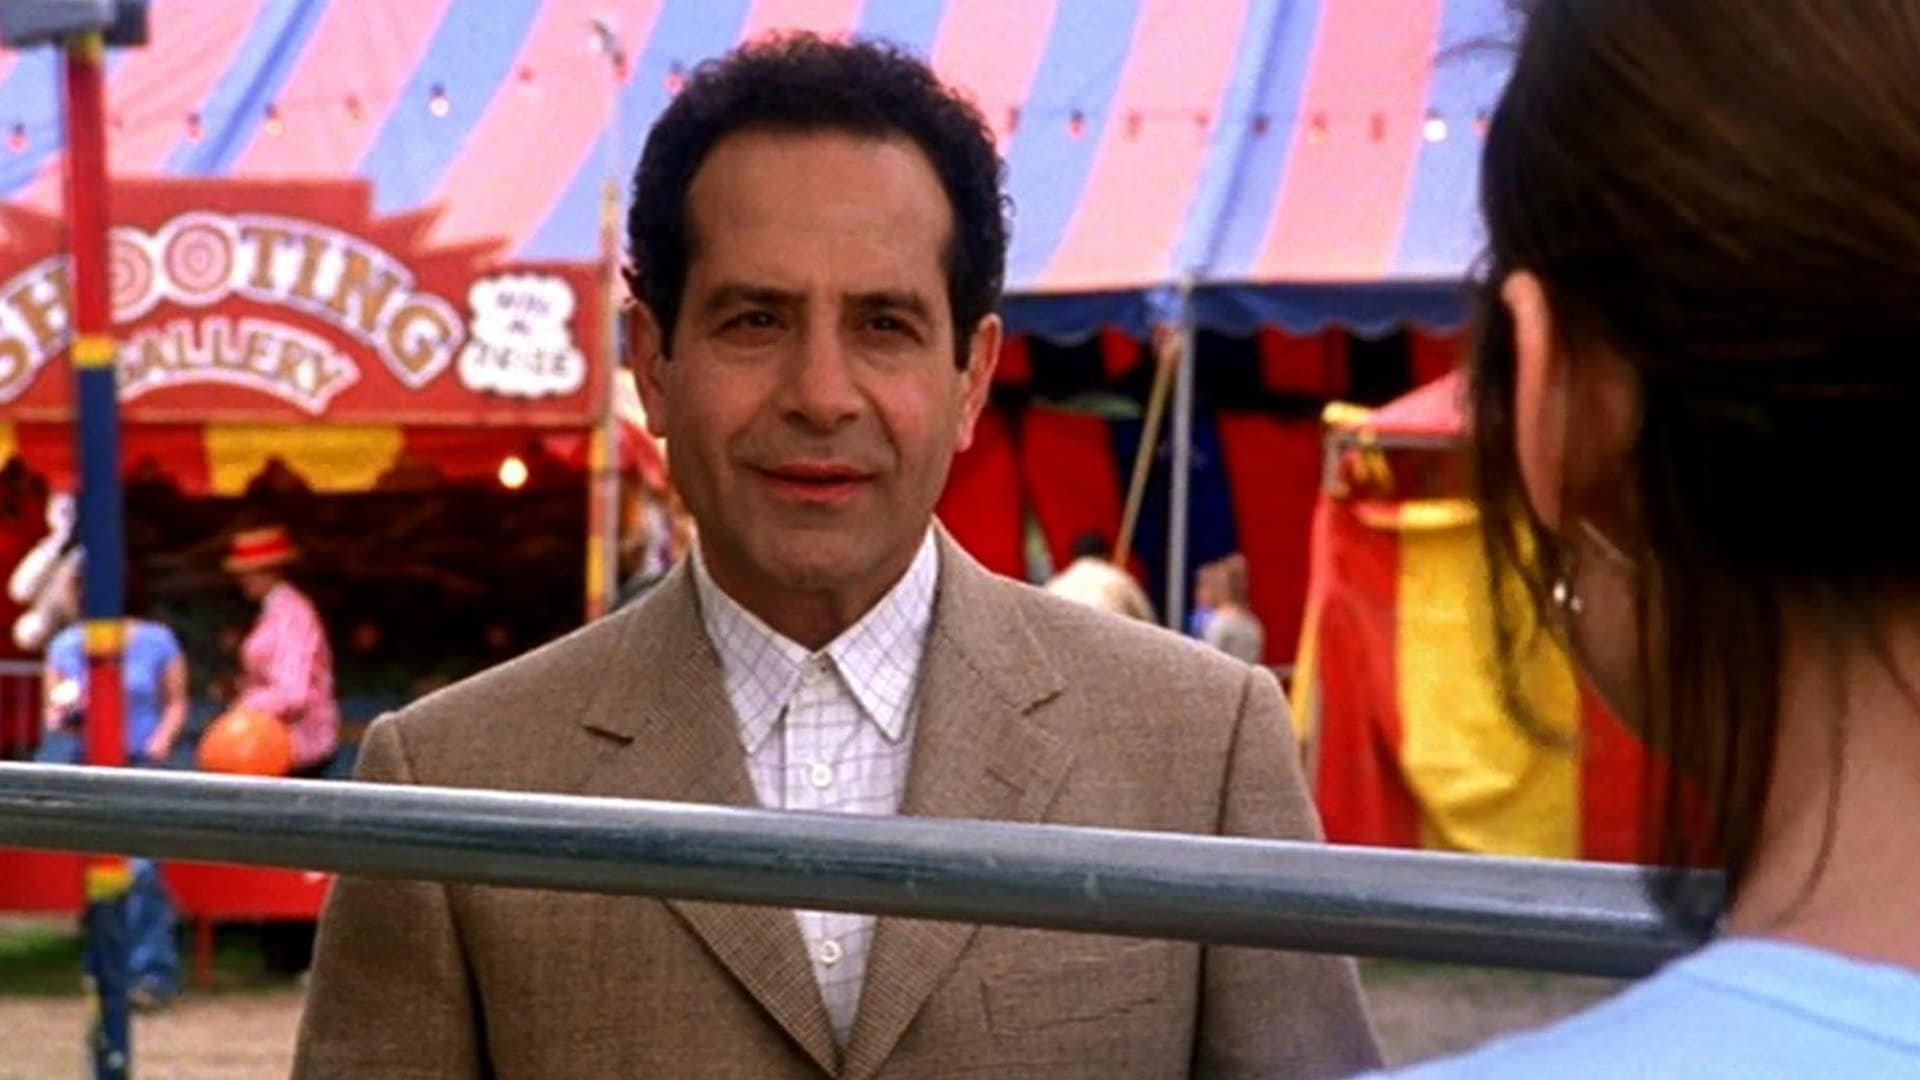 Mr. Monk Goes to the Circus